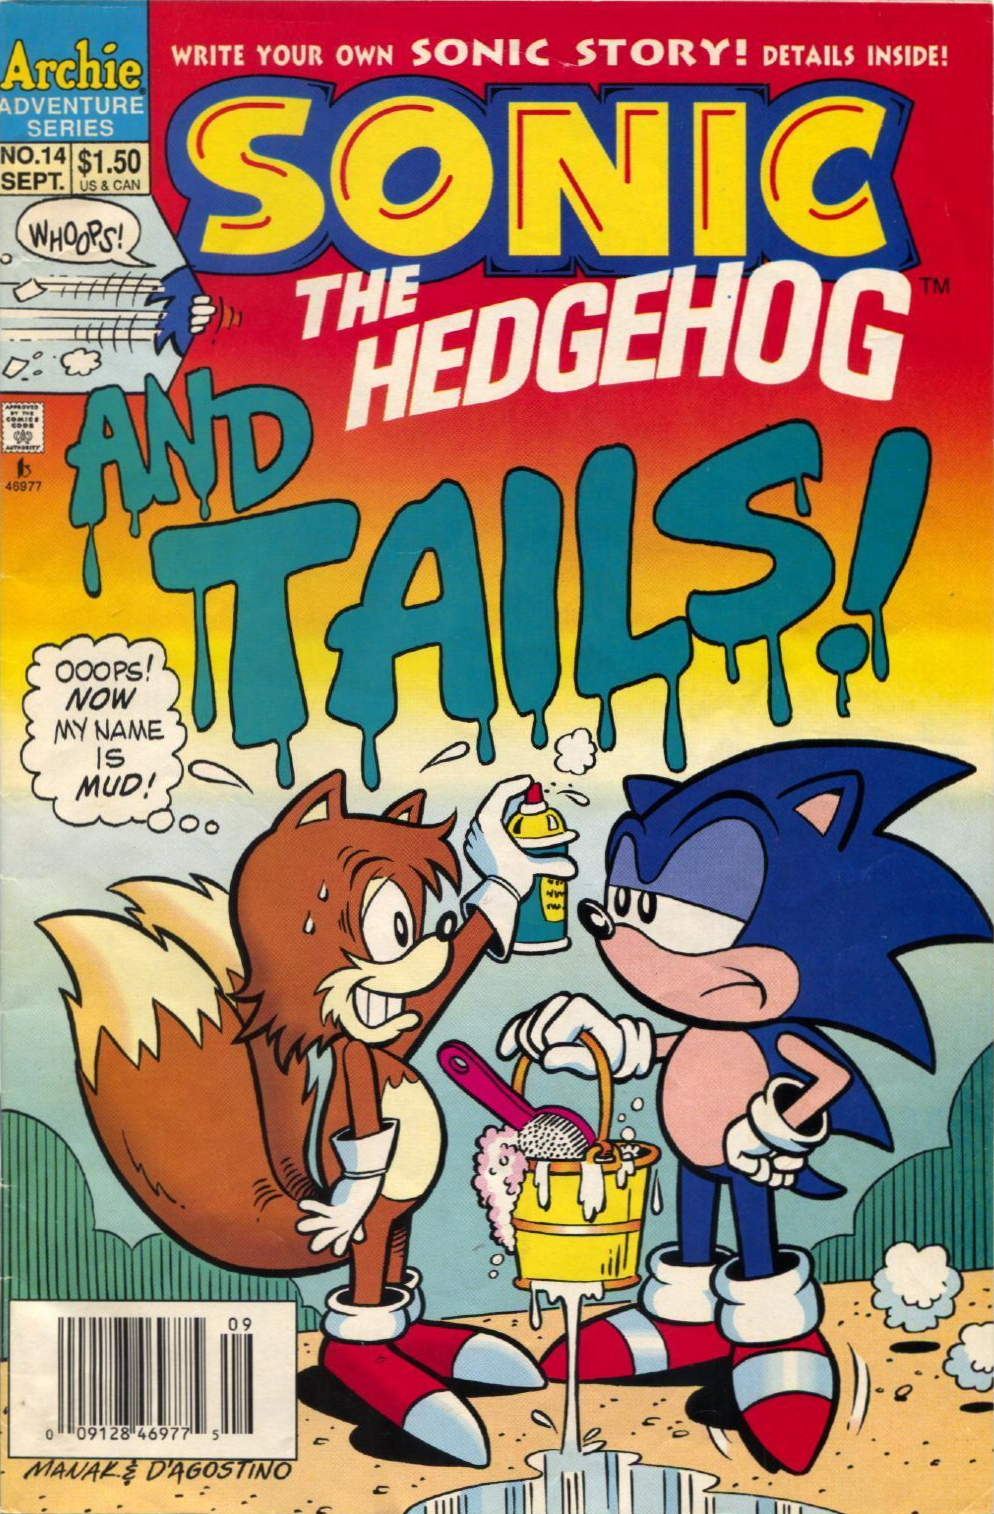 Archie Sonic The Hedgehog Issue 14 Sonic News Network